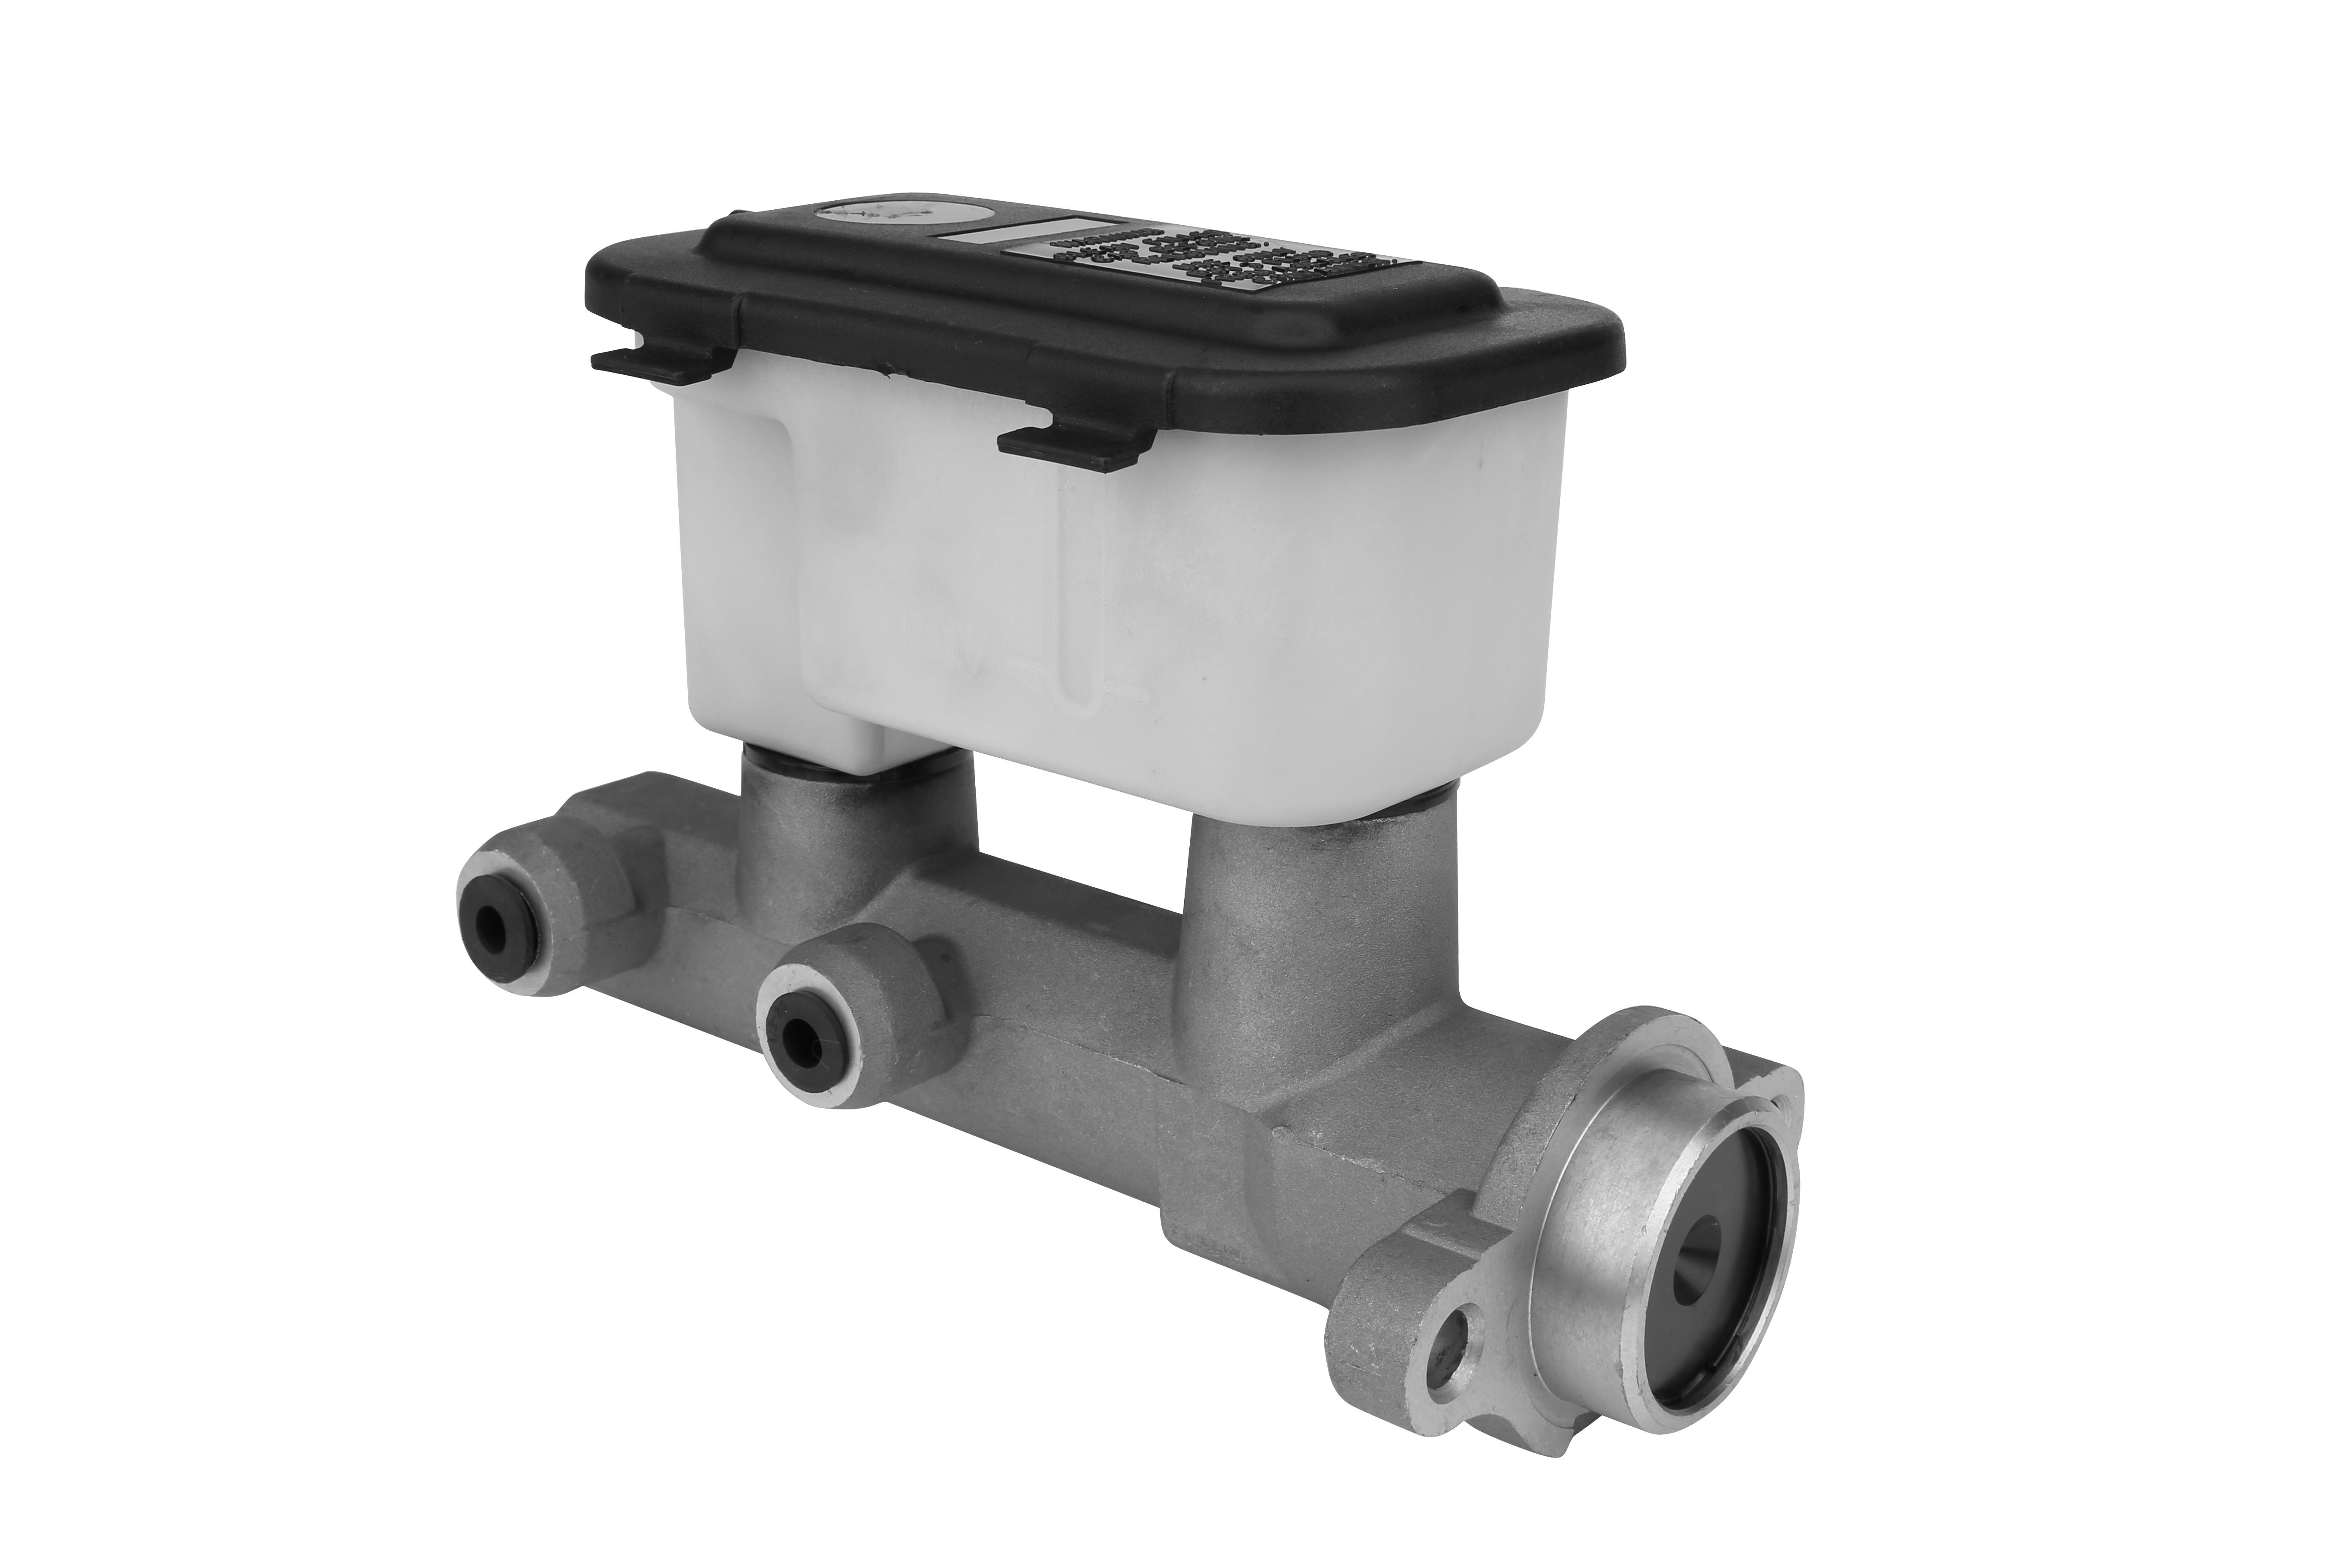 Brake Master Cylinder - Replaces M390259 - Fits Cadillac, Chevrolet, Dodge and GMC Vehicles Image